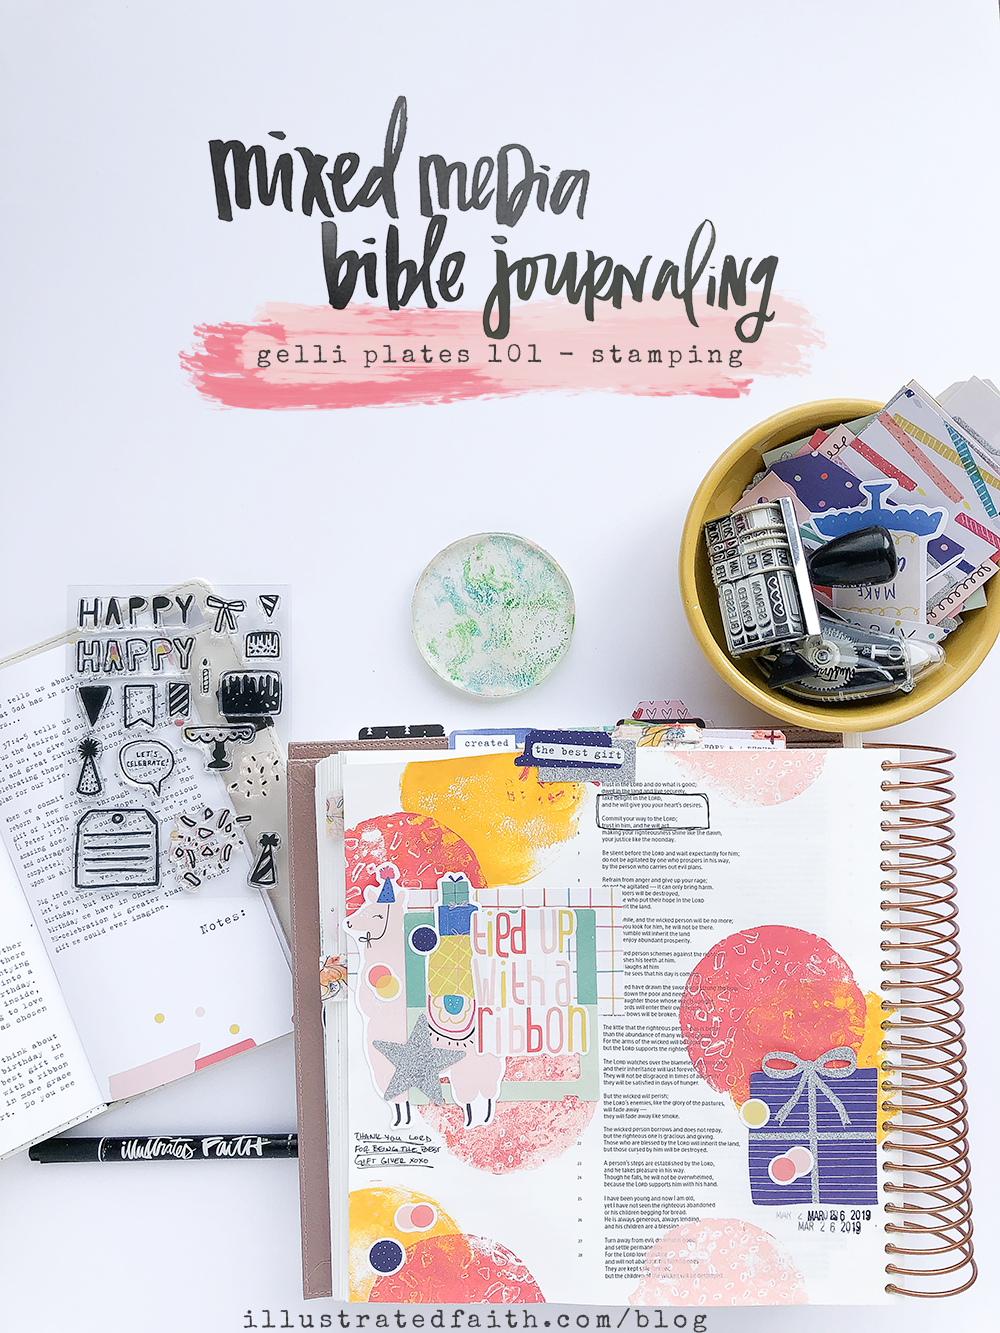 Mixed Media Bible Journaling - Gelli Plate Stamping Tutorial by Heather Greenwood   Tied Up With a Ribbon - Psalm 37:4-5